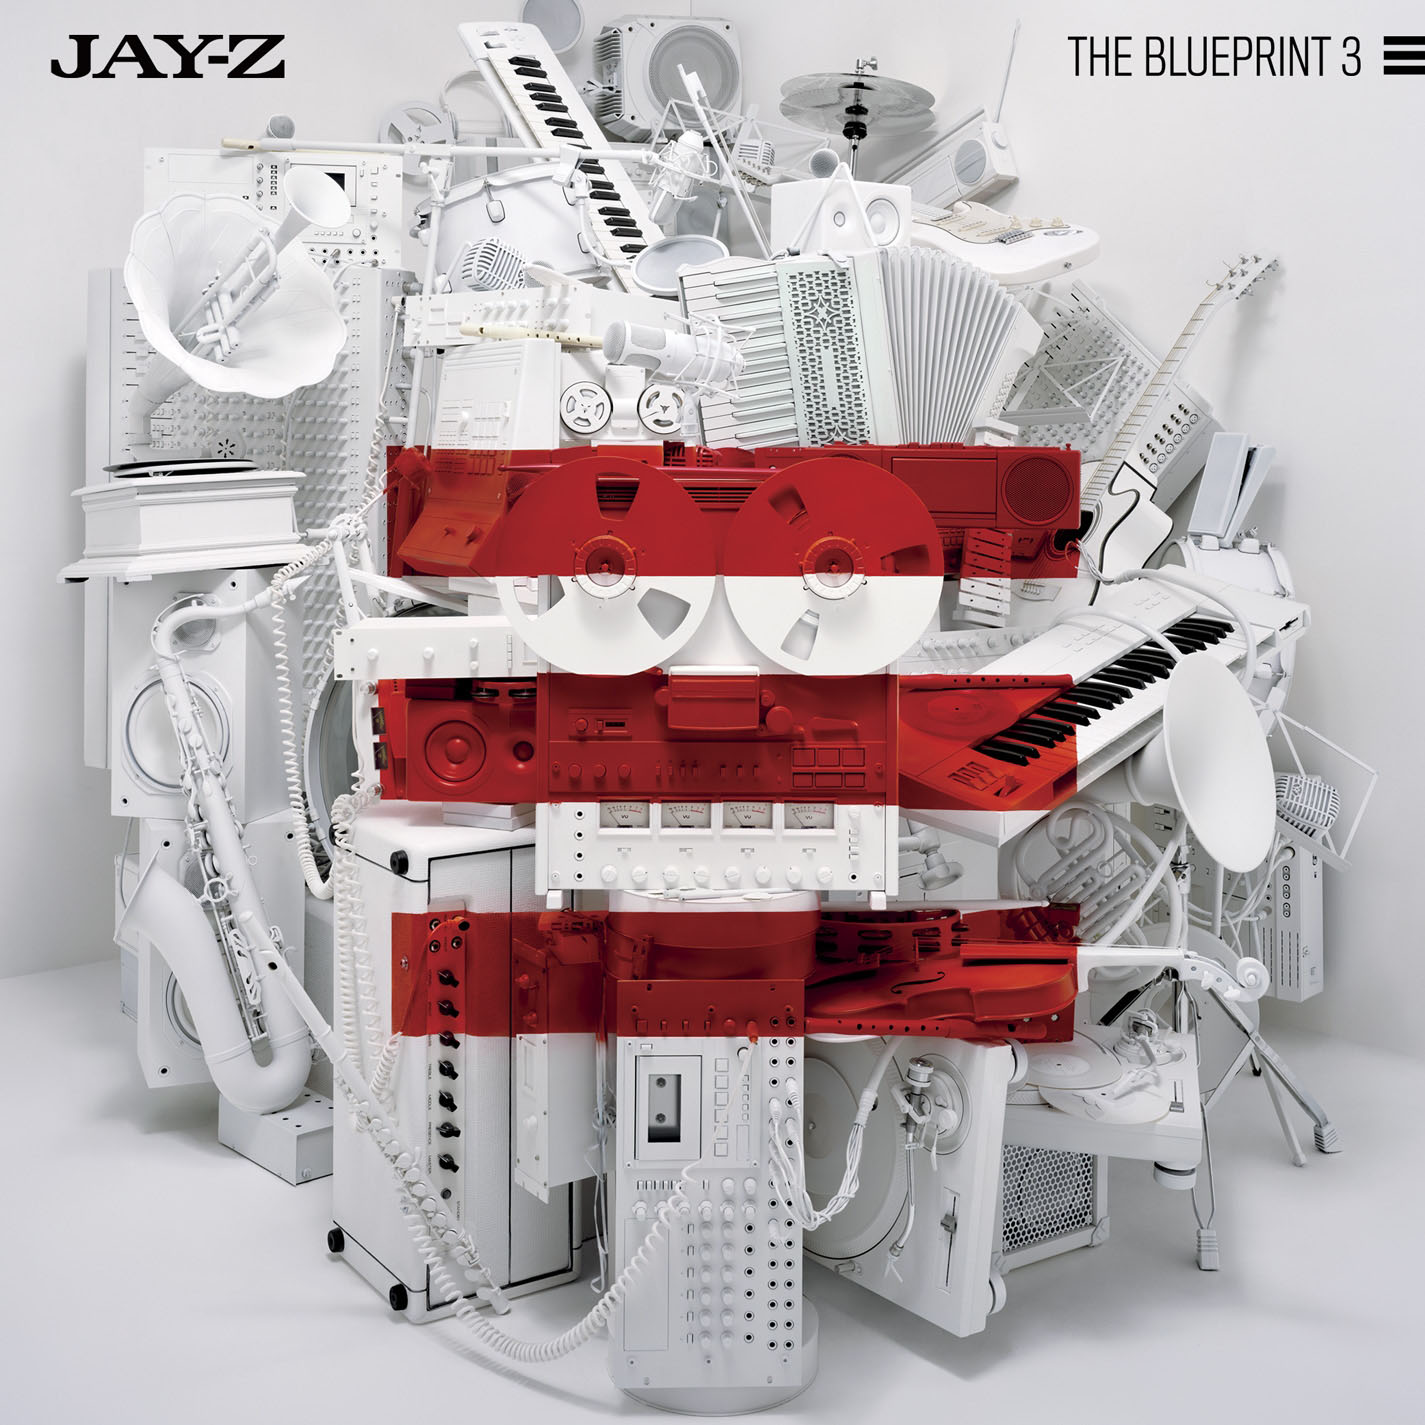 Jay Z - On to the next one